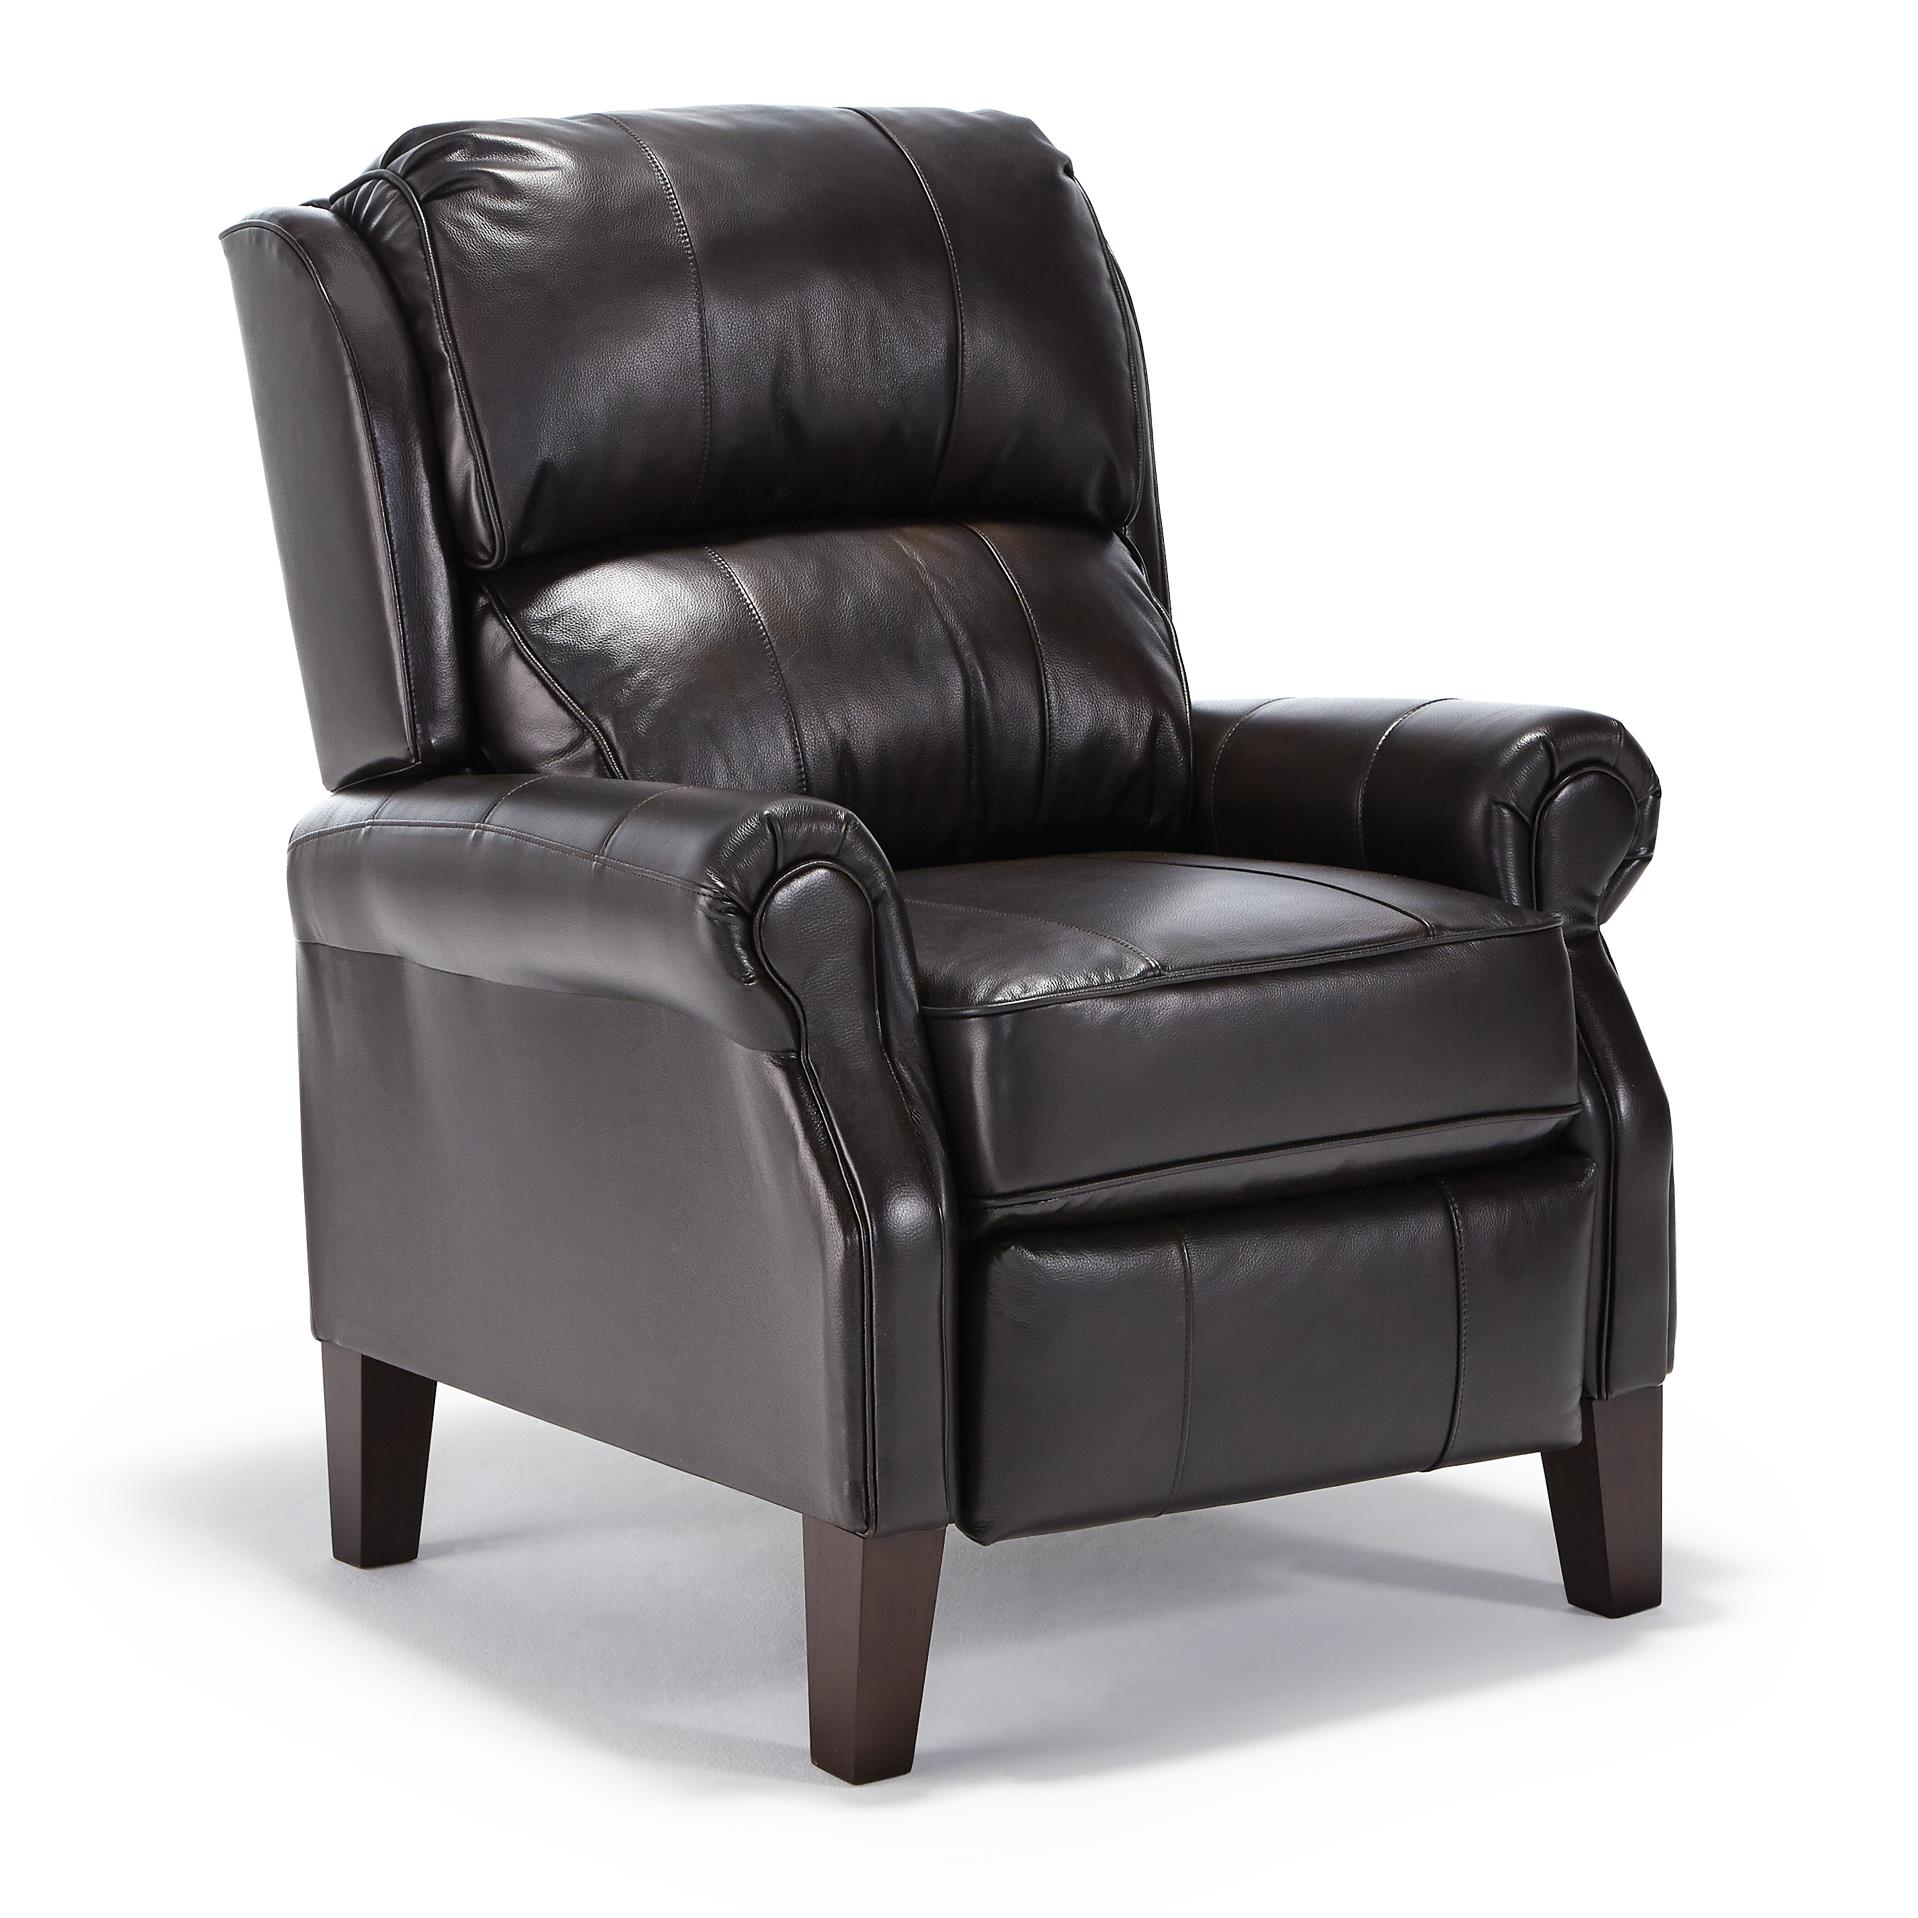 Recliners - Pushback Joanna Power Recliner by Best Home Furnishings at Baer's Furniture